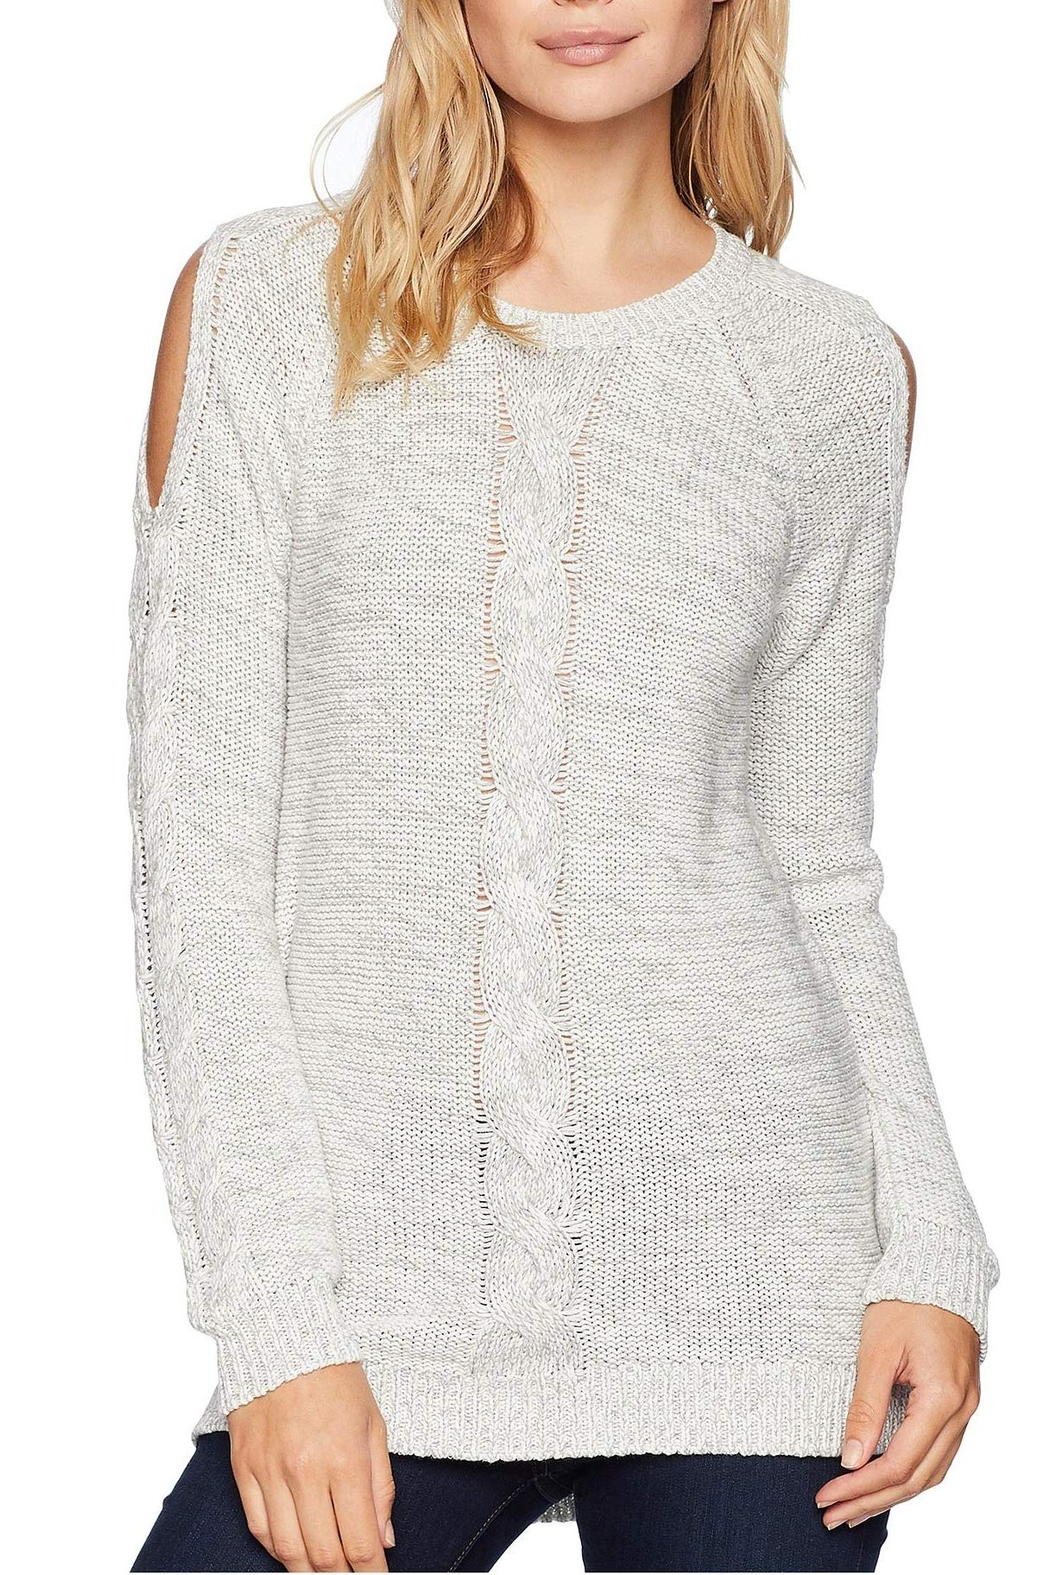 Tribal Cold Shoulder Sweater - Main Image